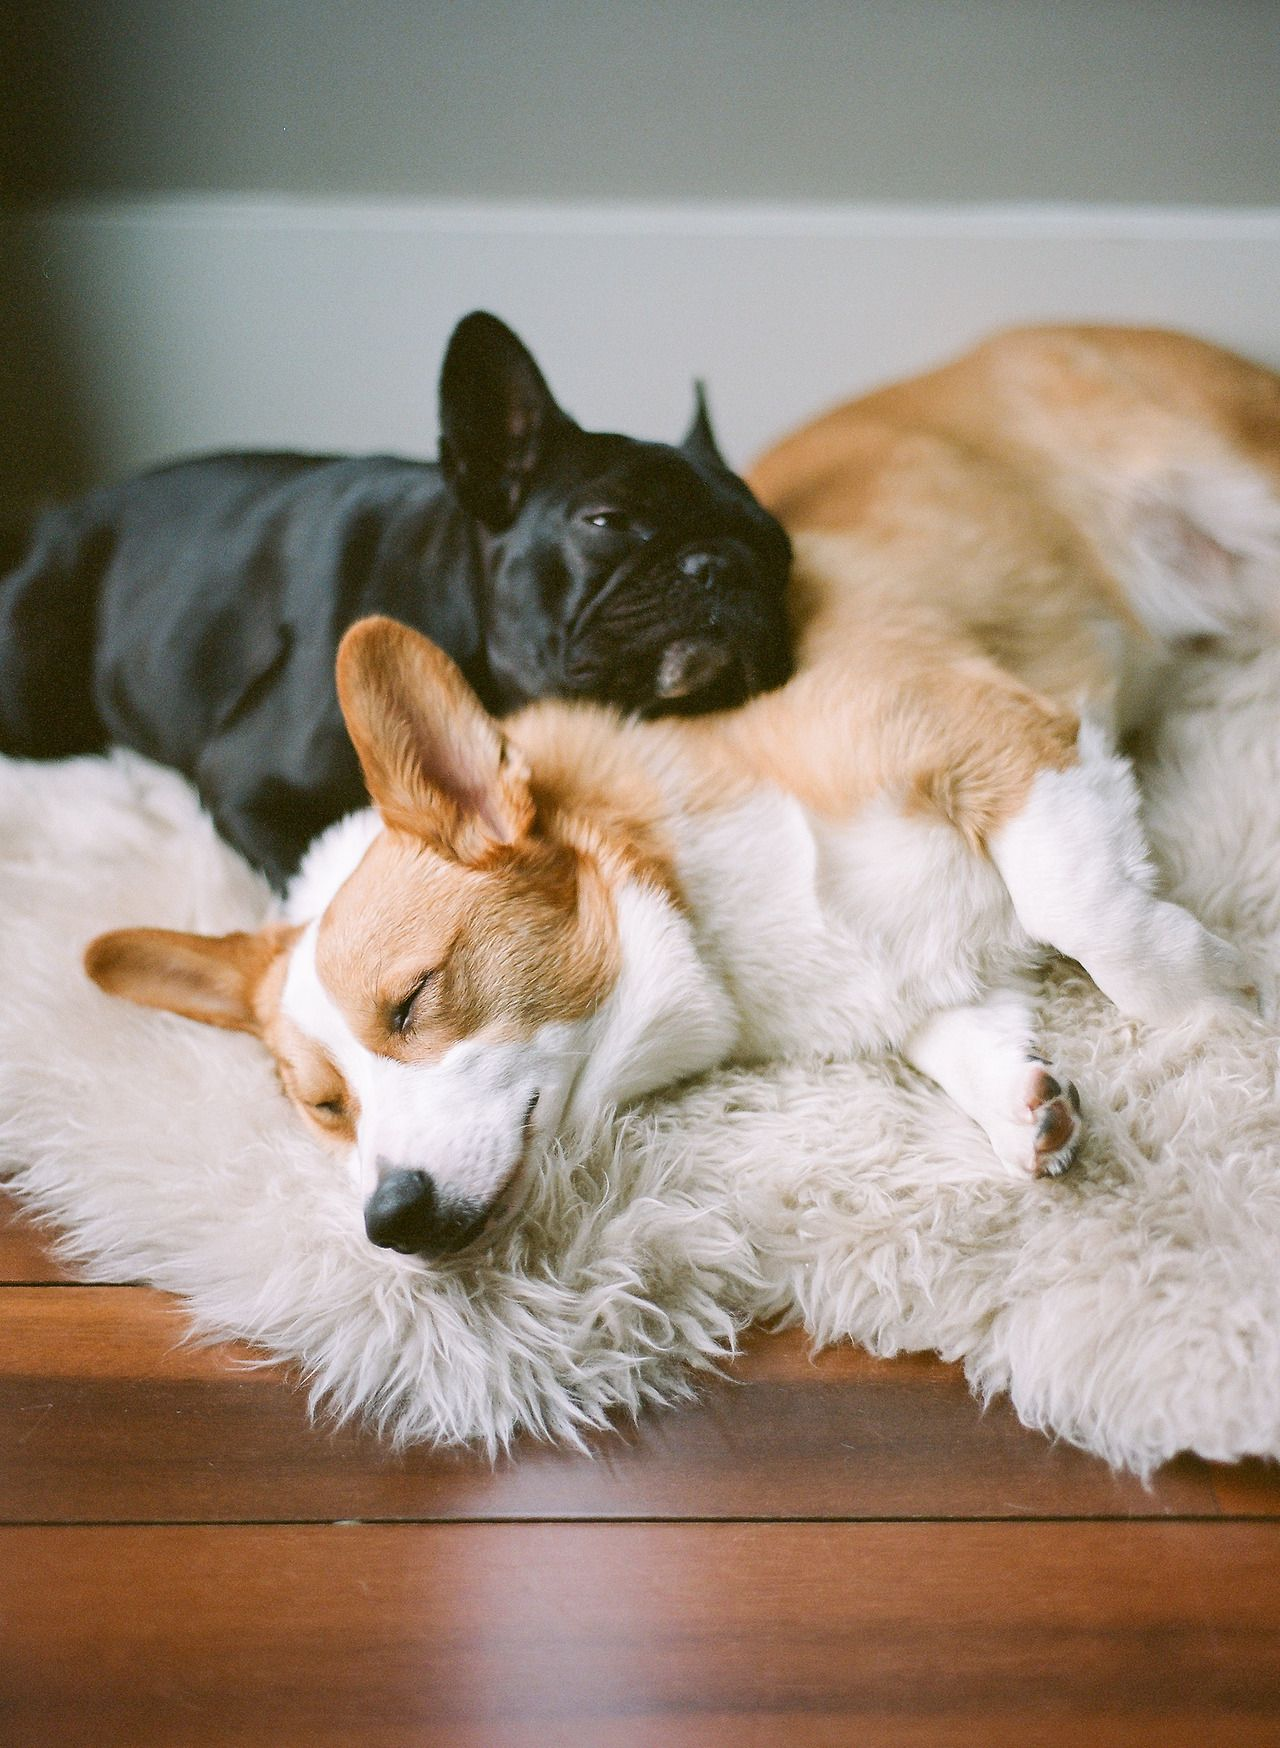 By Sonya Yu Dogs And Puppies Cute Creatures Cute Dogs